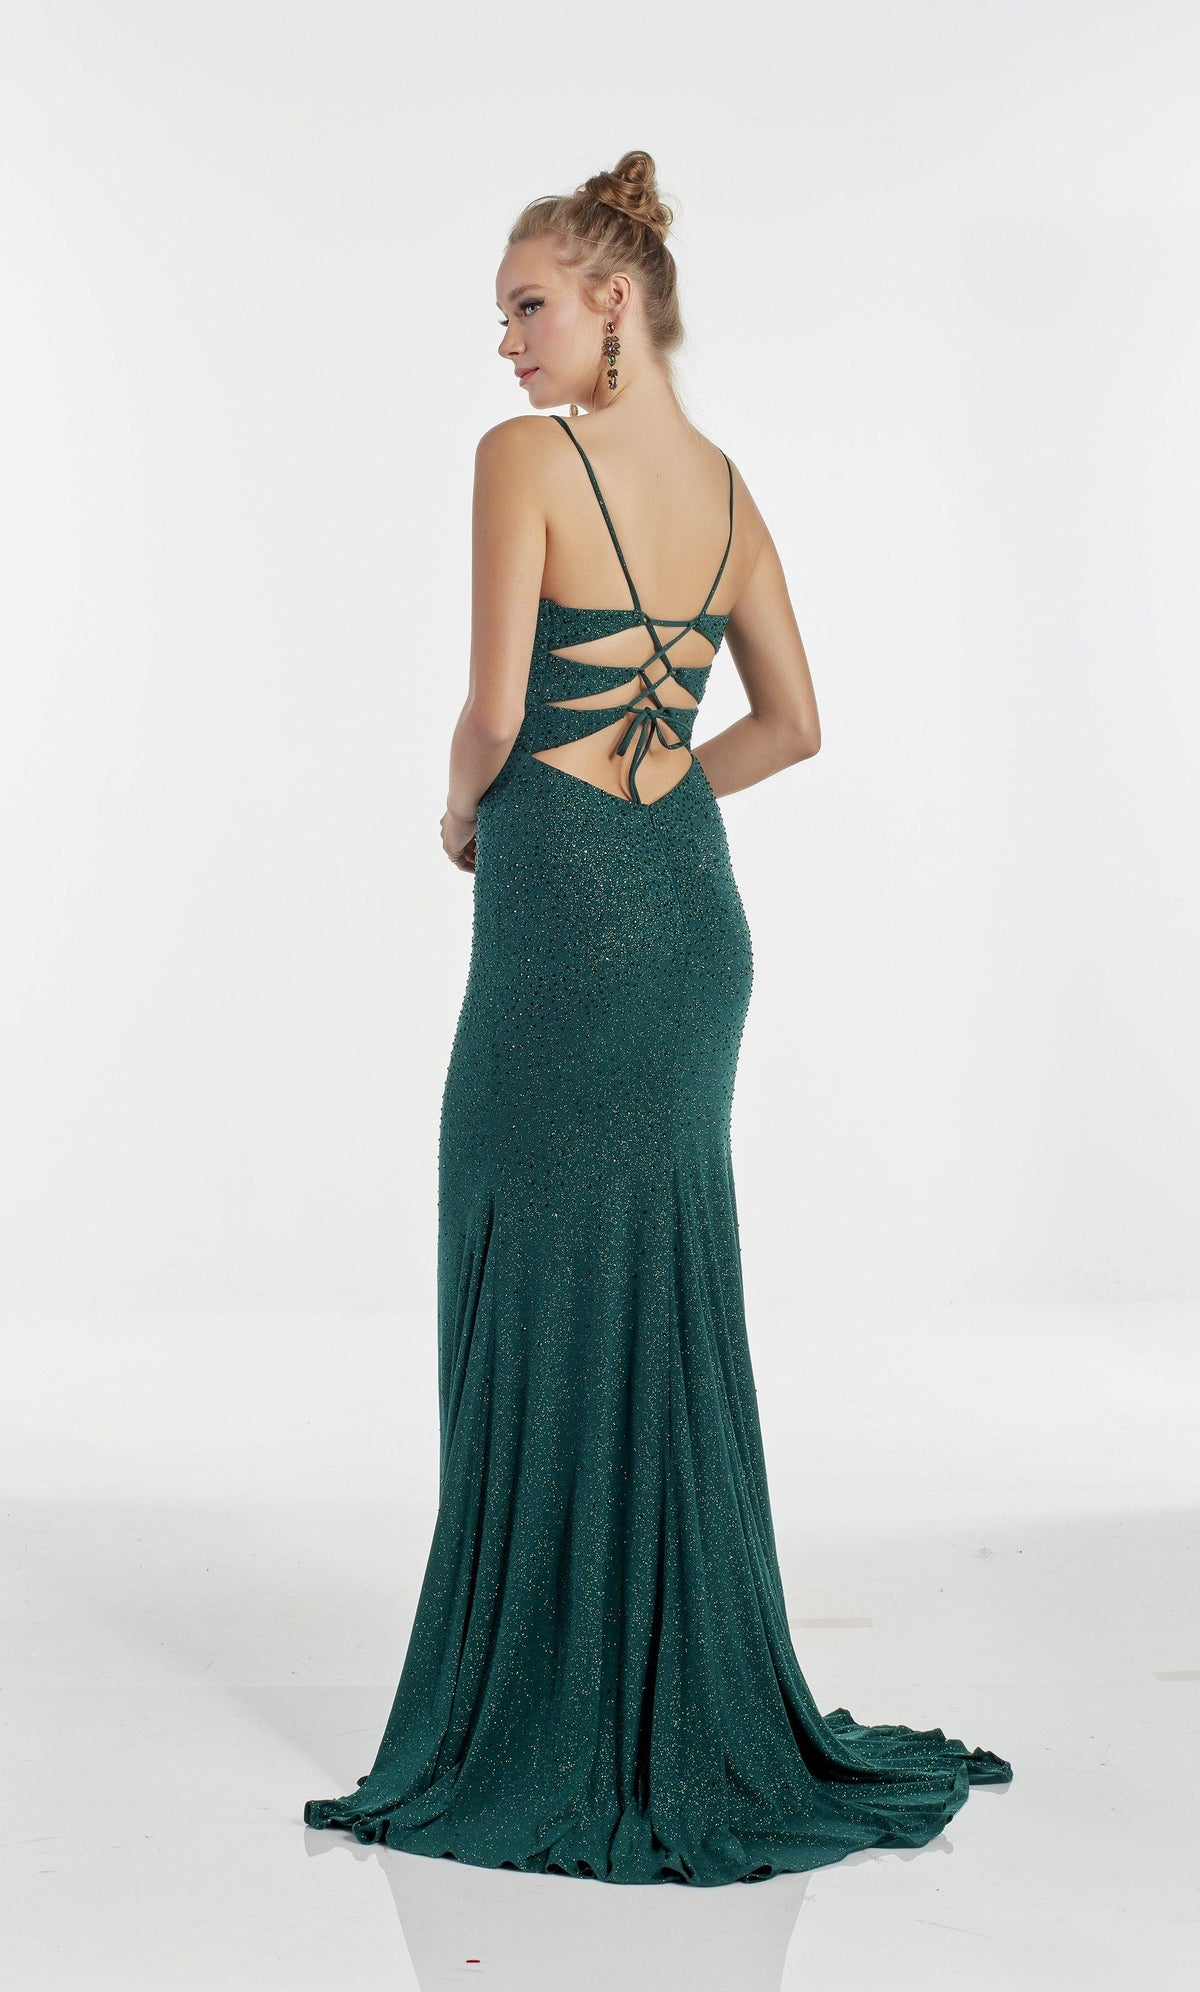 Emerald Green column evening dress with a strappy back and train